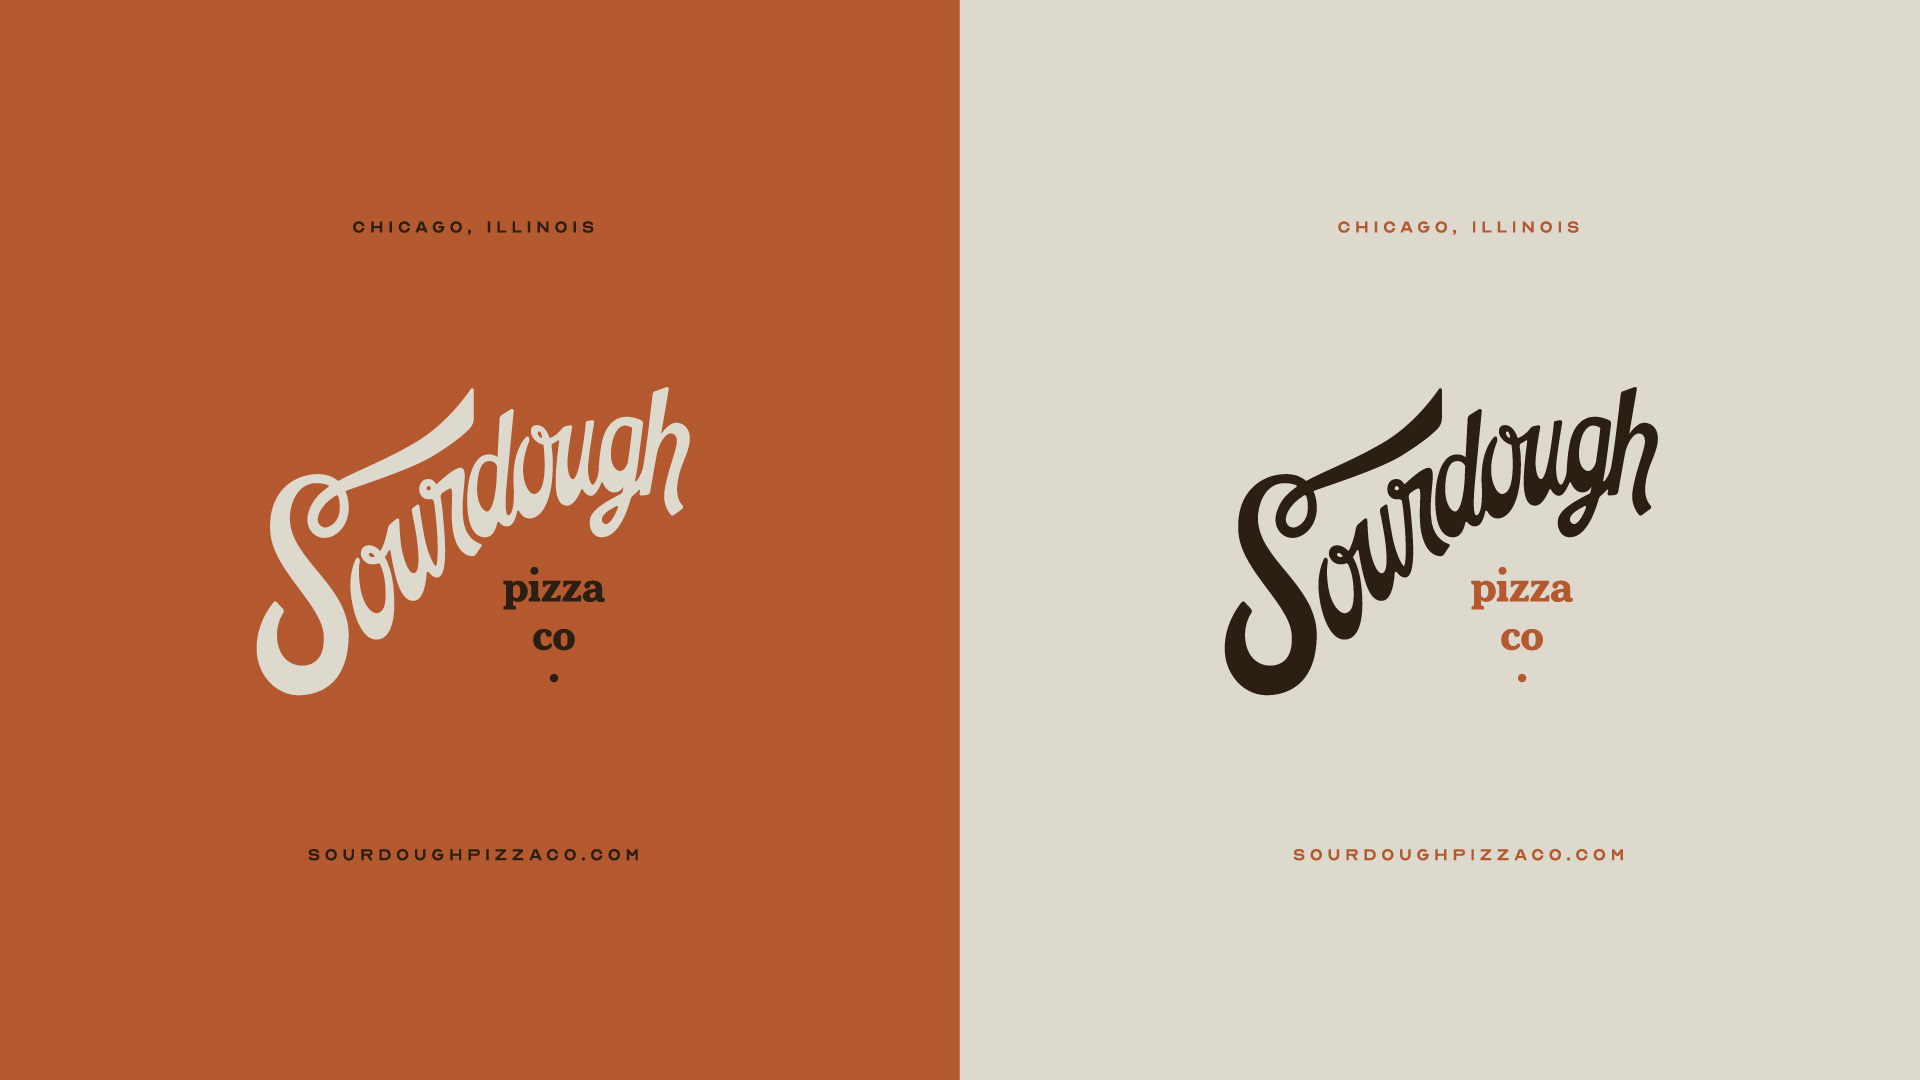 Sourdough Pizza Co Branding by Longitude° - Springfield, MO